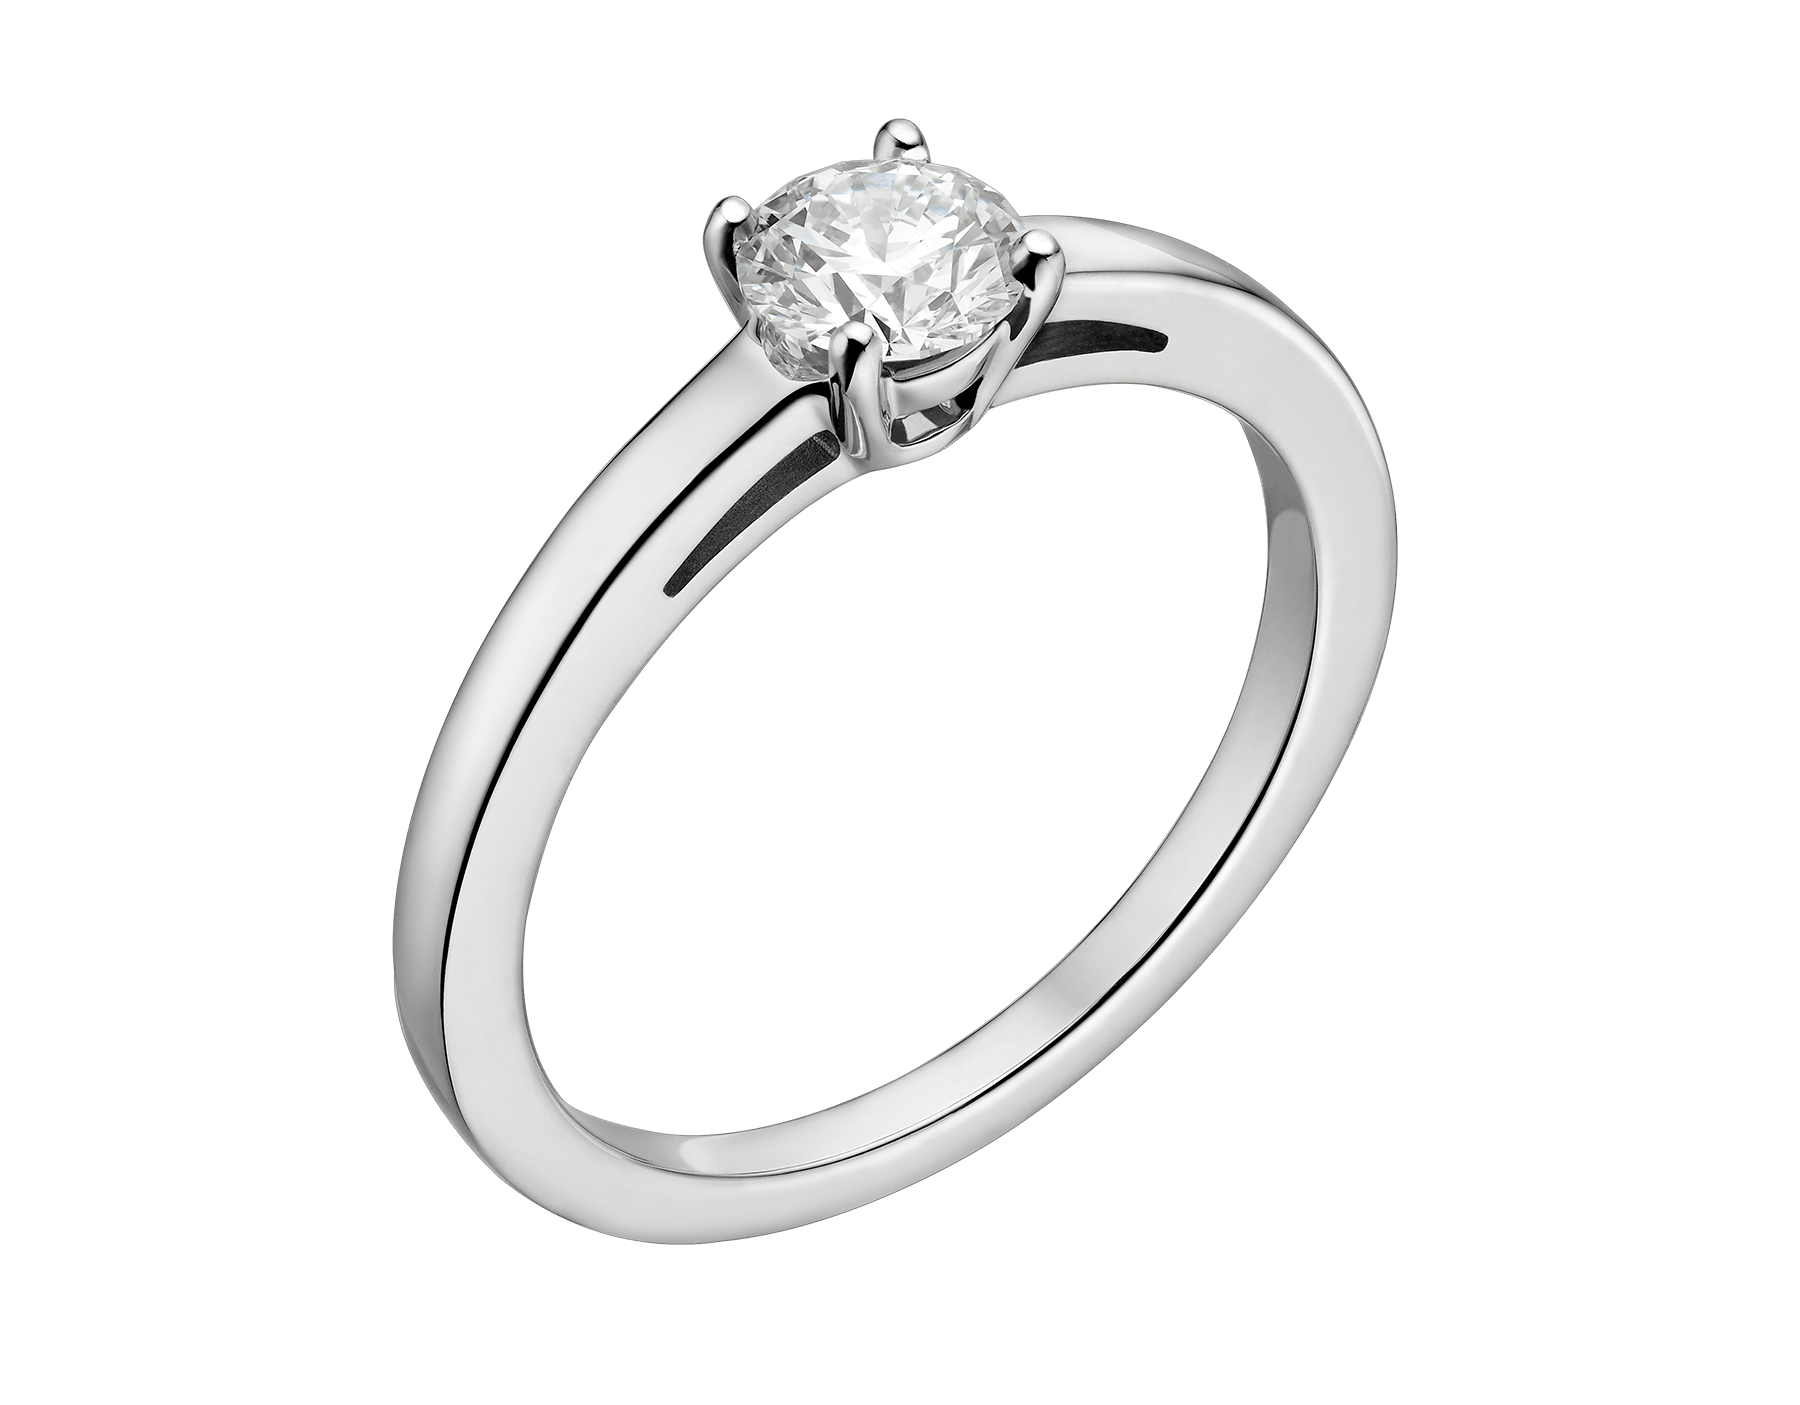 Griffe solitaire ring in platinum with round brilliant cut diamond. Available from 0.30 ct. A classic setting that allows the beauty and the pureness of the solitaire diamond to assert itself. 323419 image 1